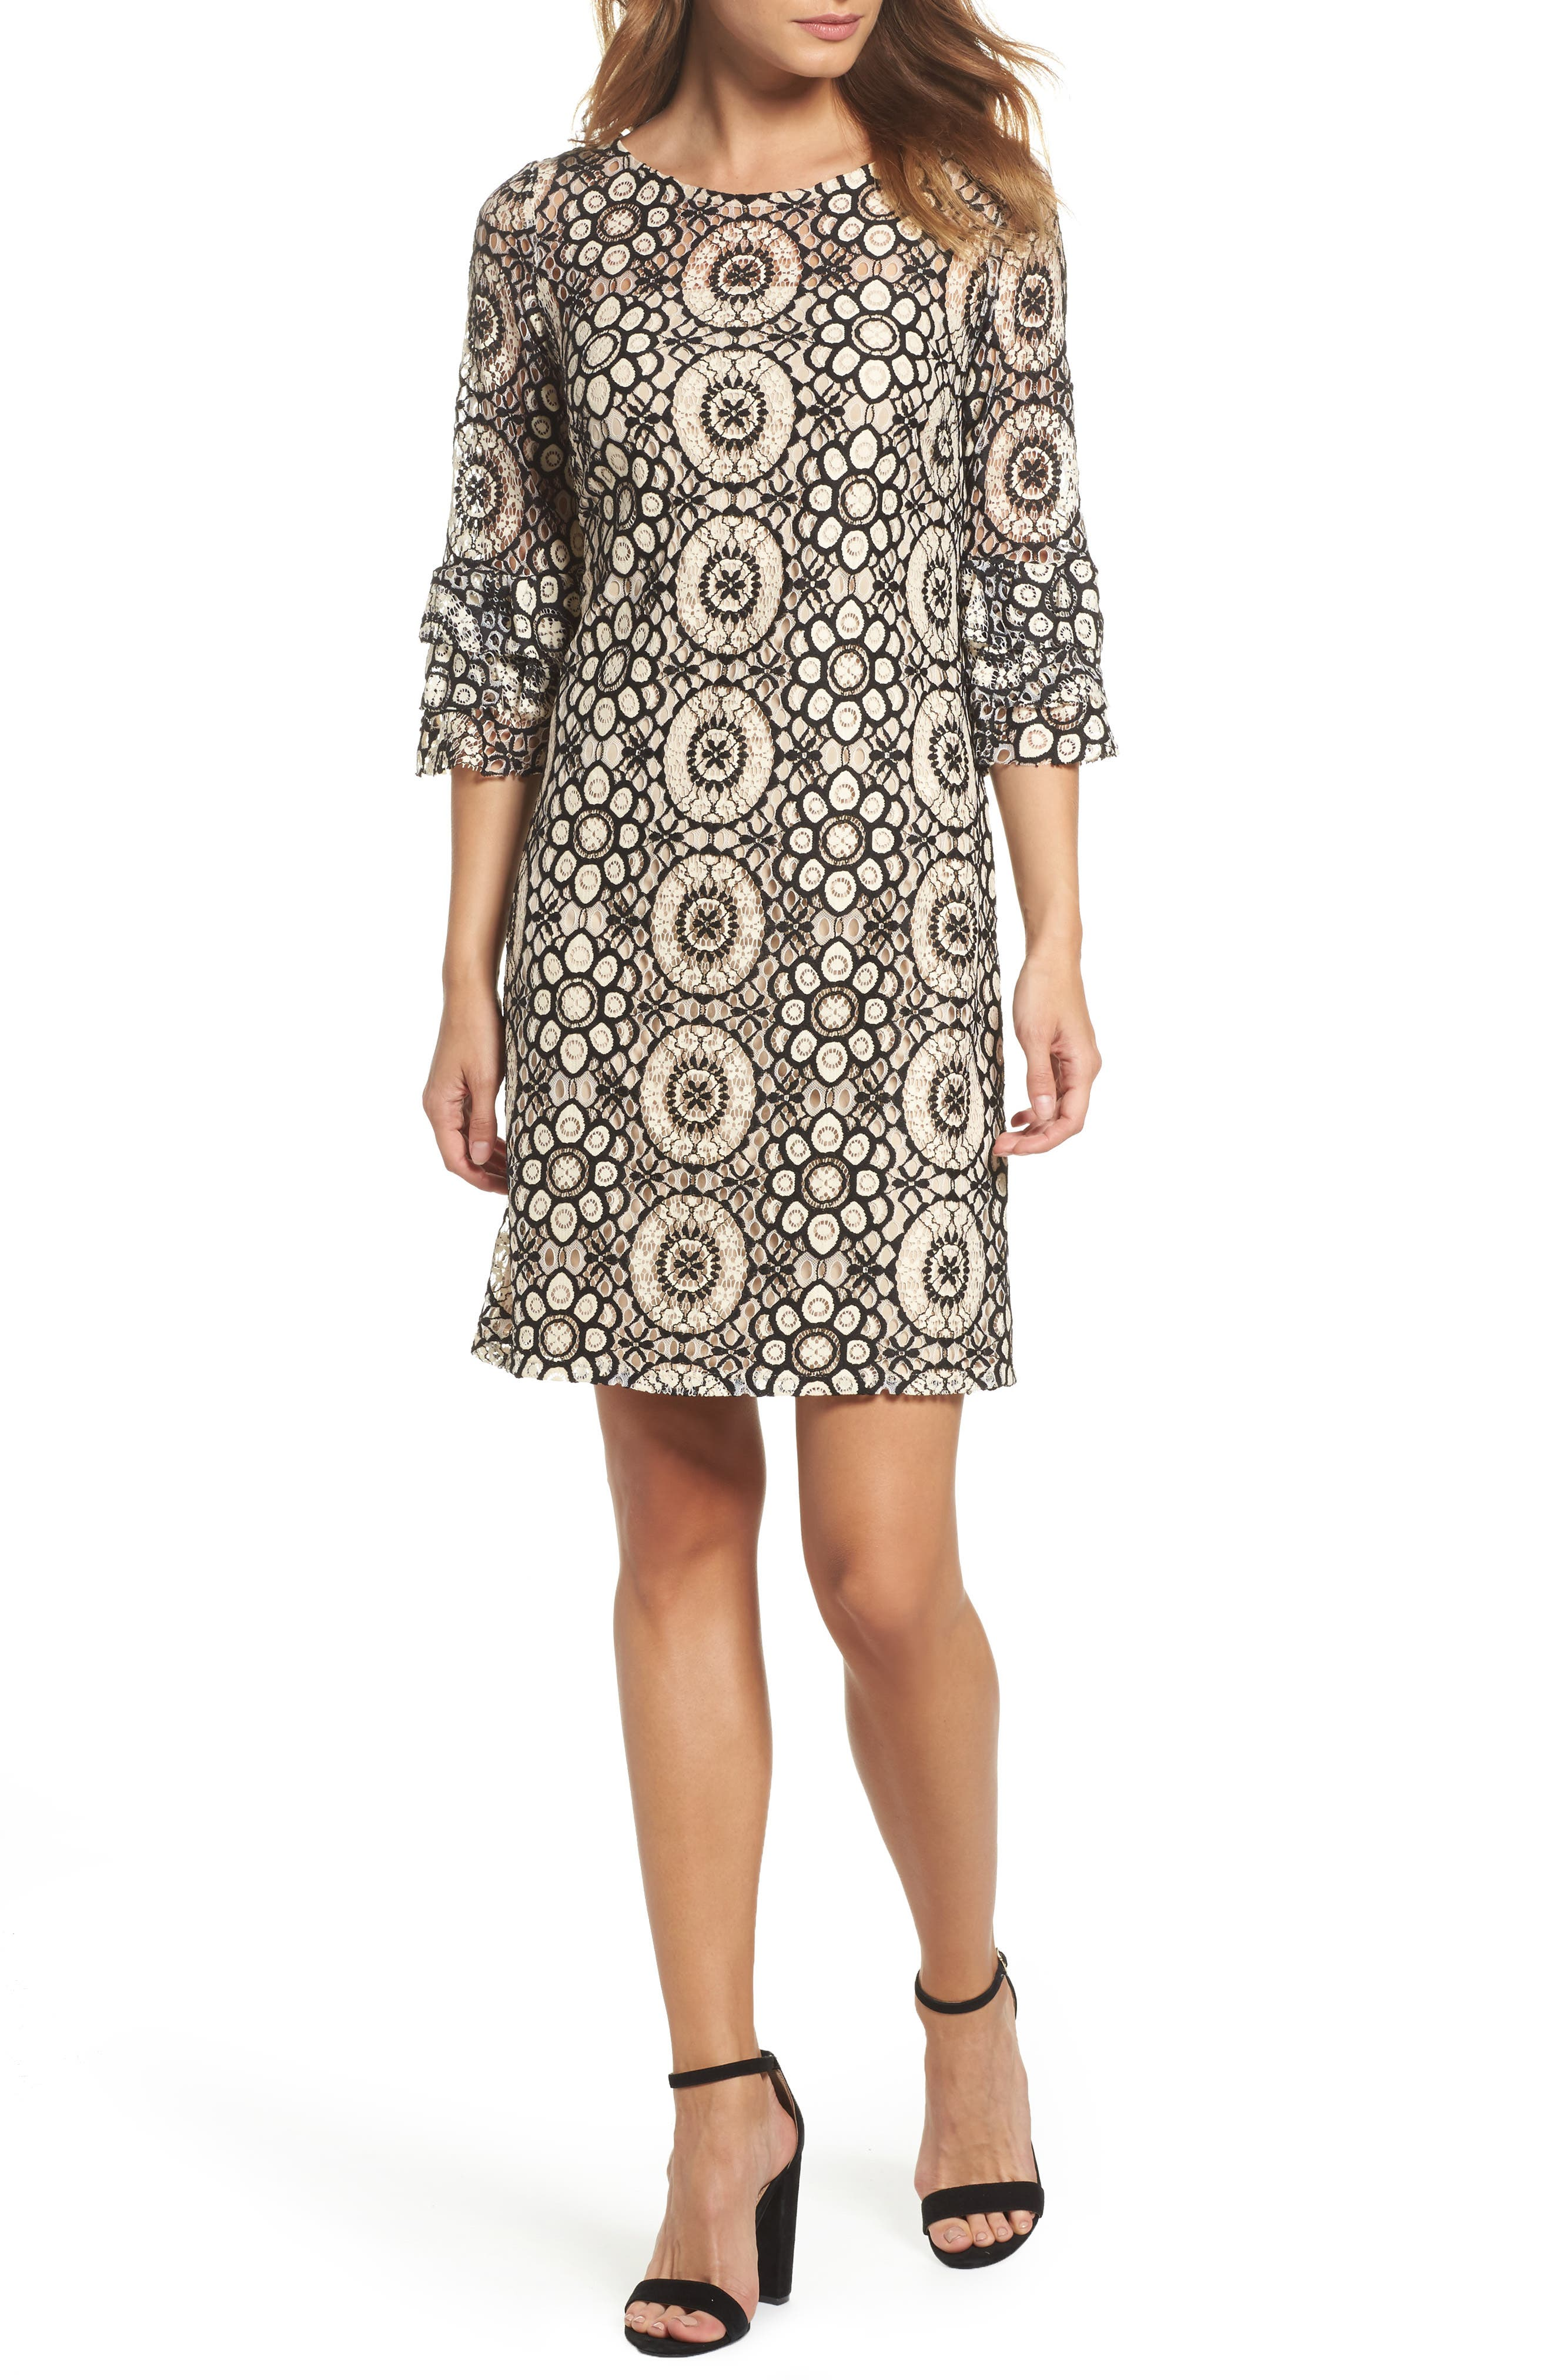 Tiered Sleeve Lace Shift Dress,                             Main thumbnail 1, color,                             Cream/ Black